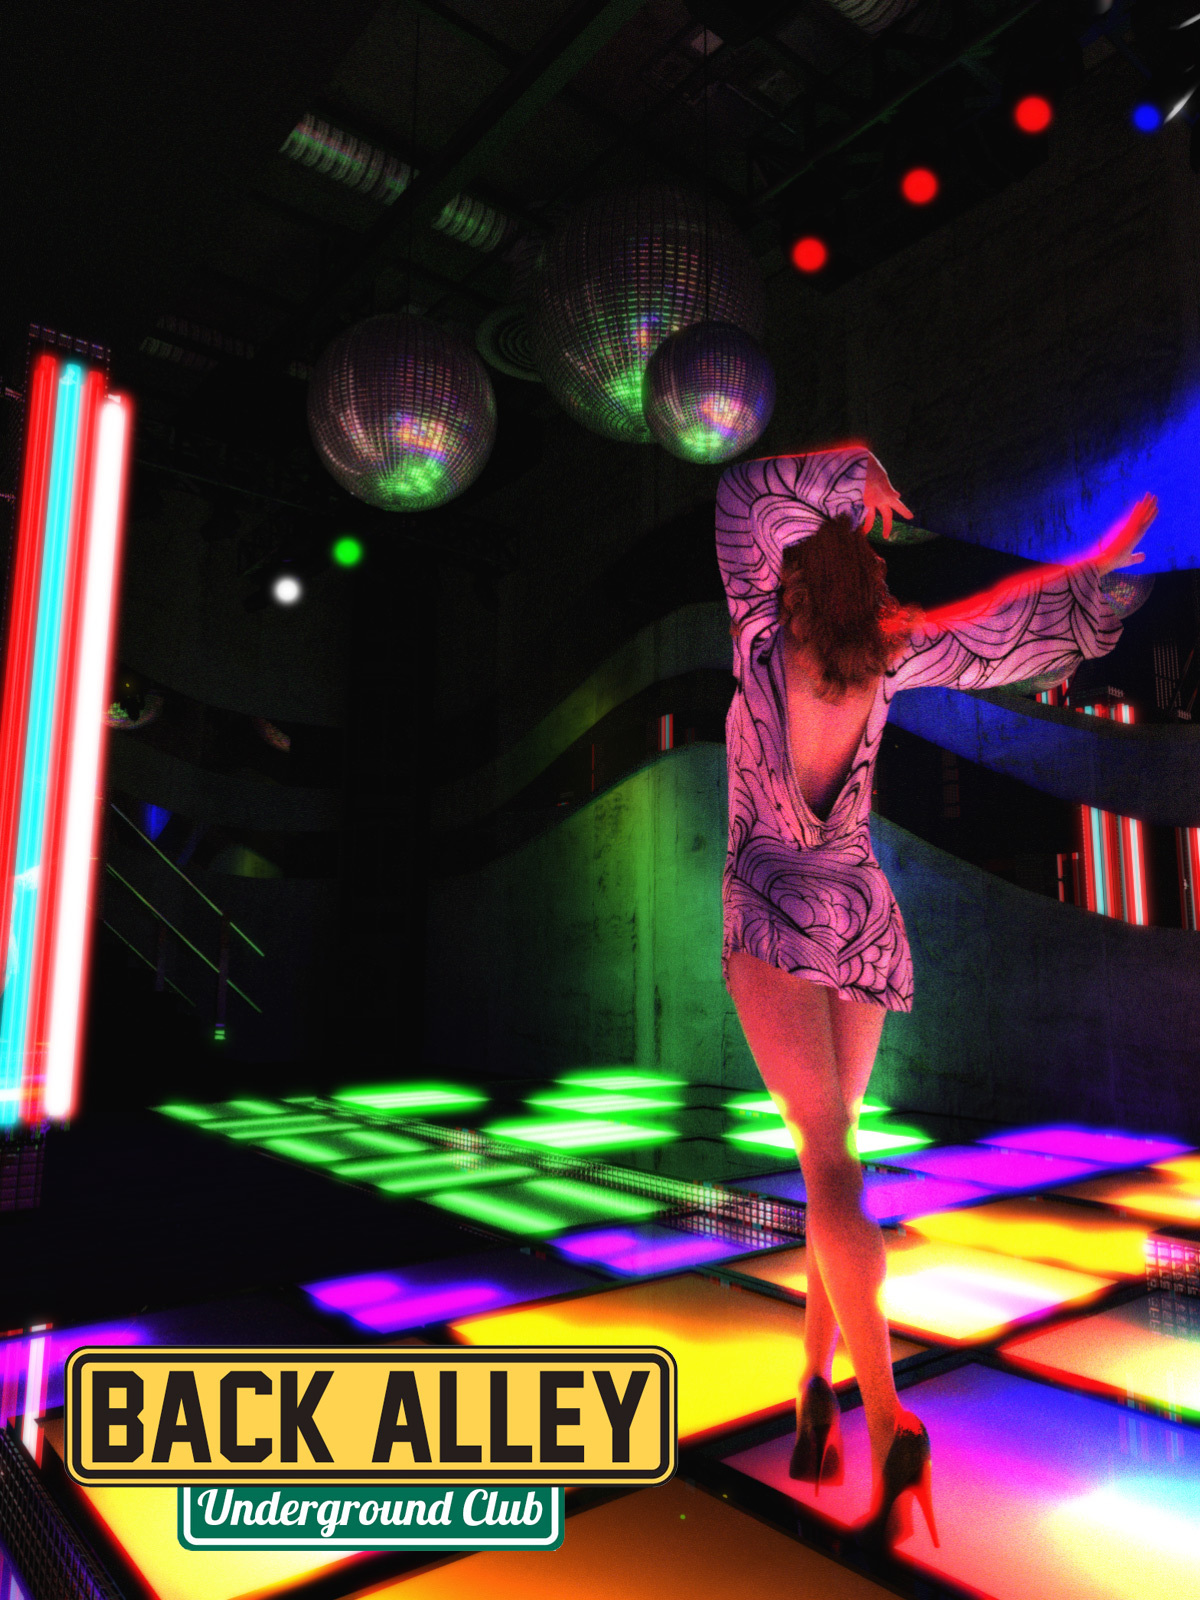 Back Alley Underground Club for DS Iray